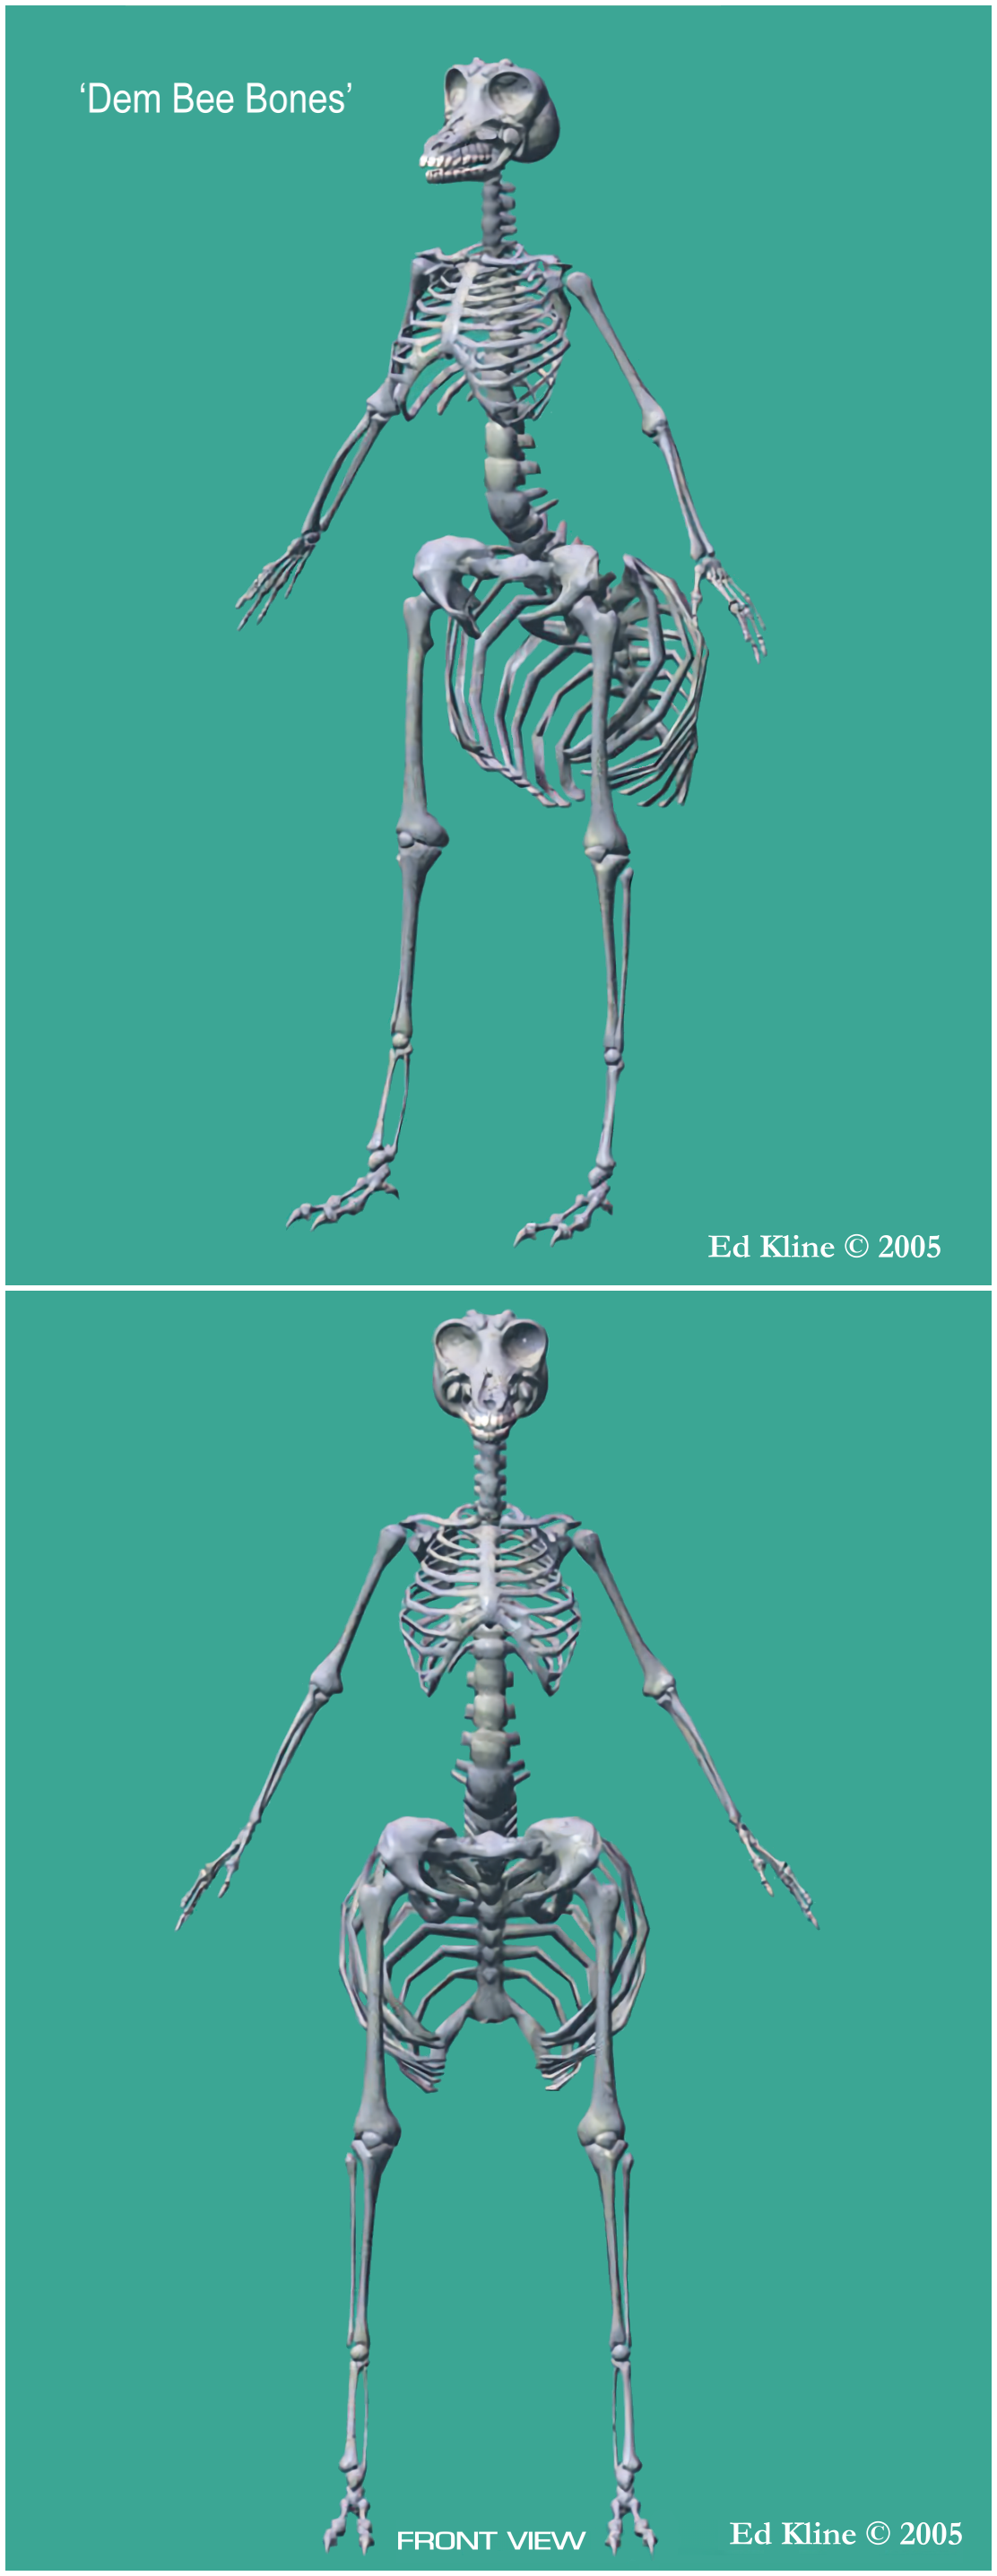 Dem Bee Bones - front left and front views